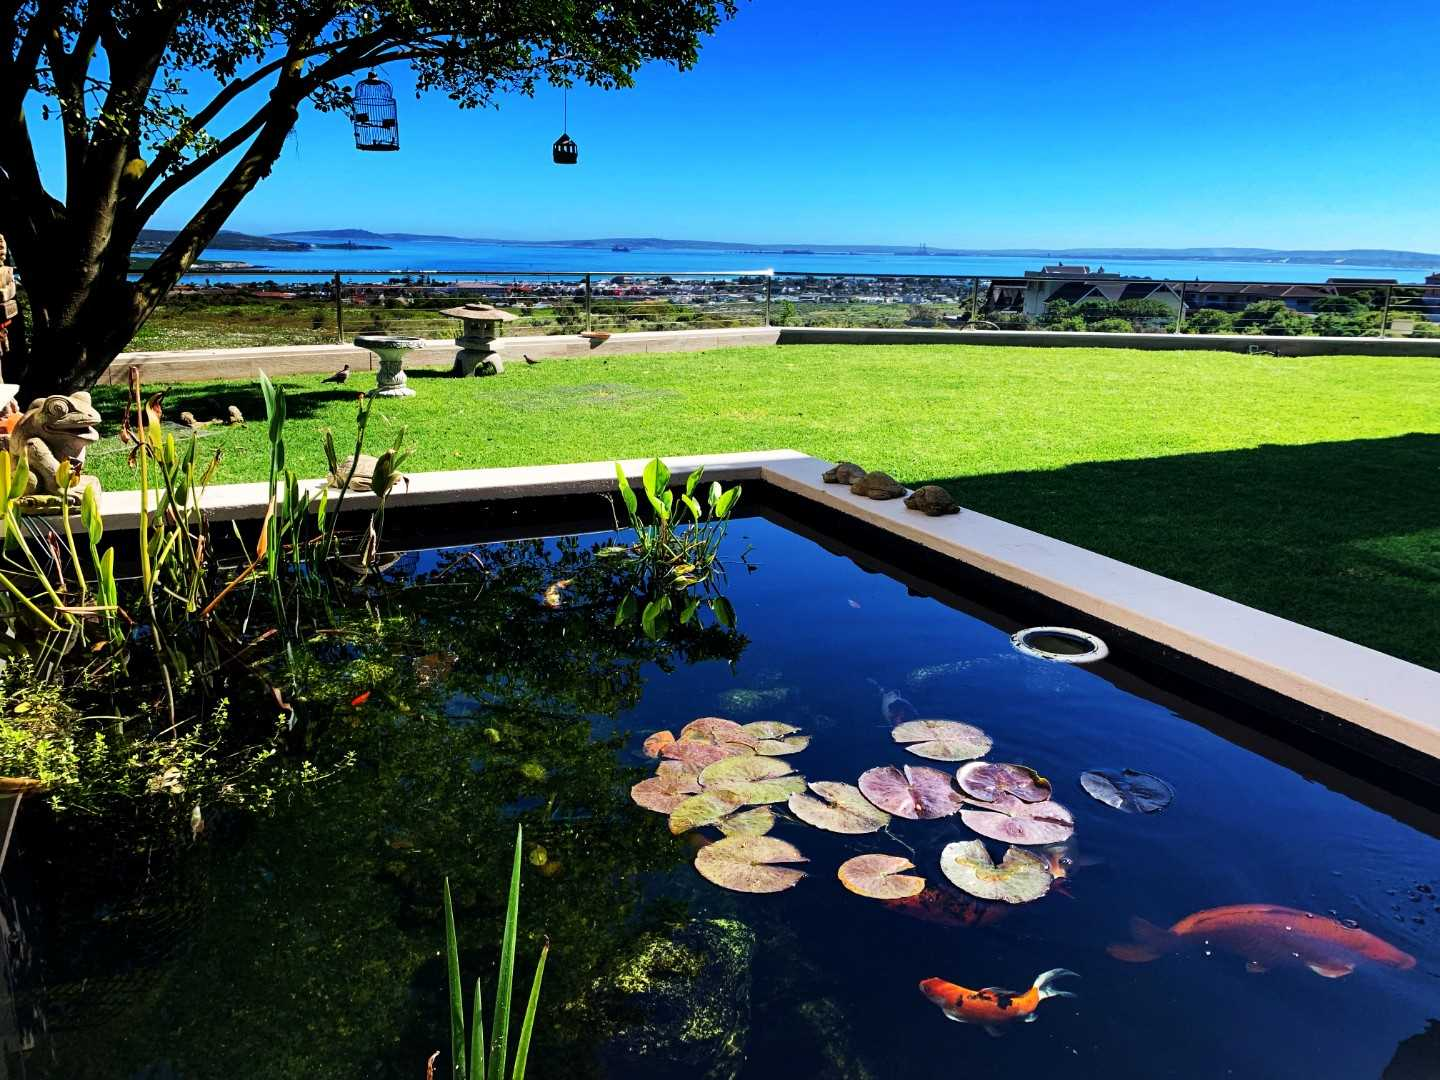 Koi Ponds at Sun Patio overlooking the garden with panaramic views of the lagoon